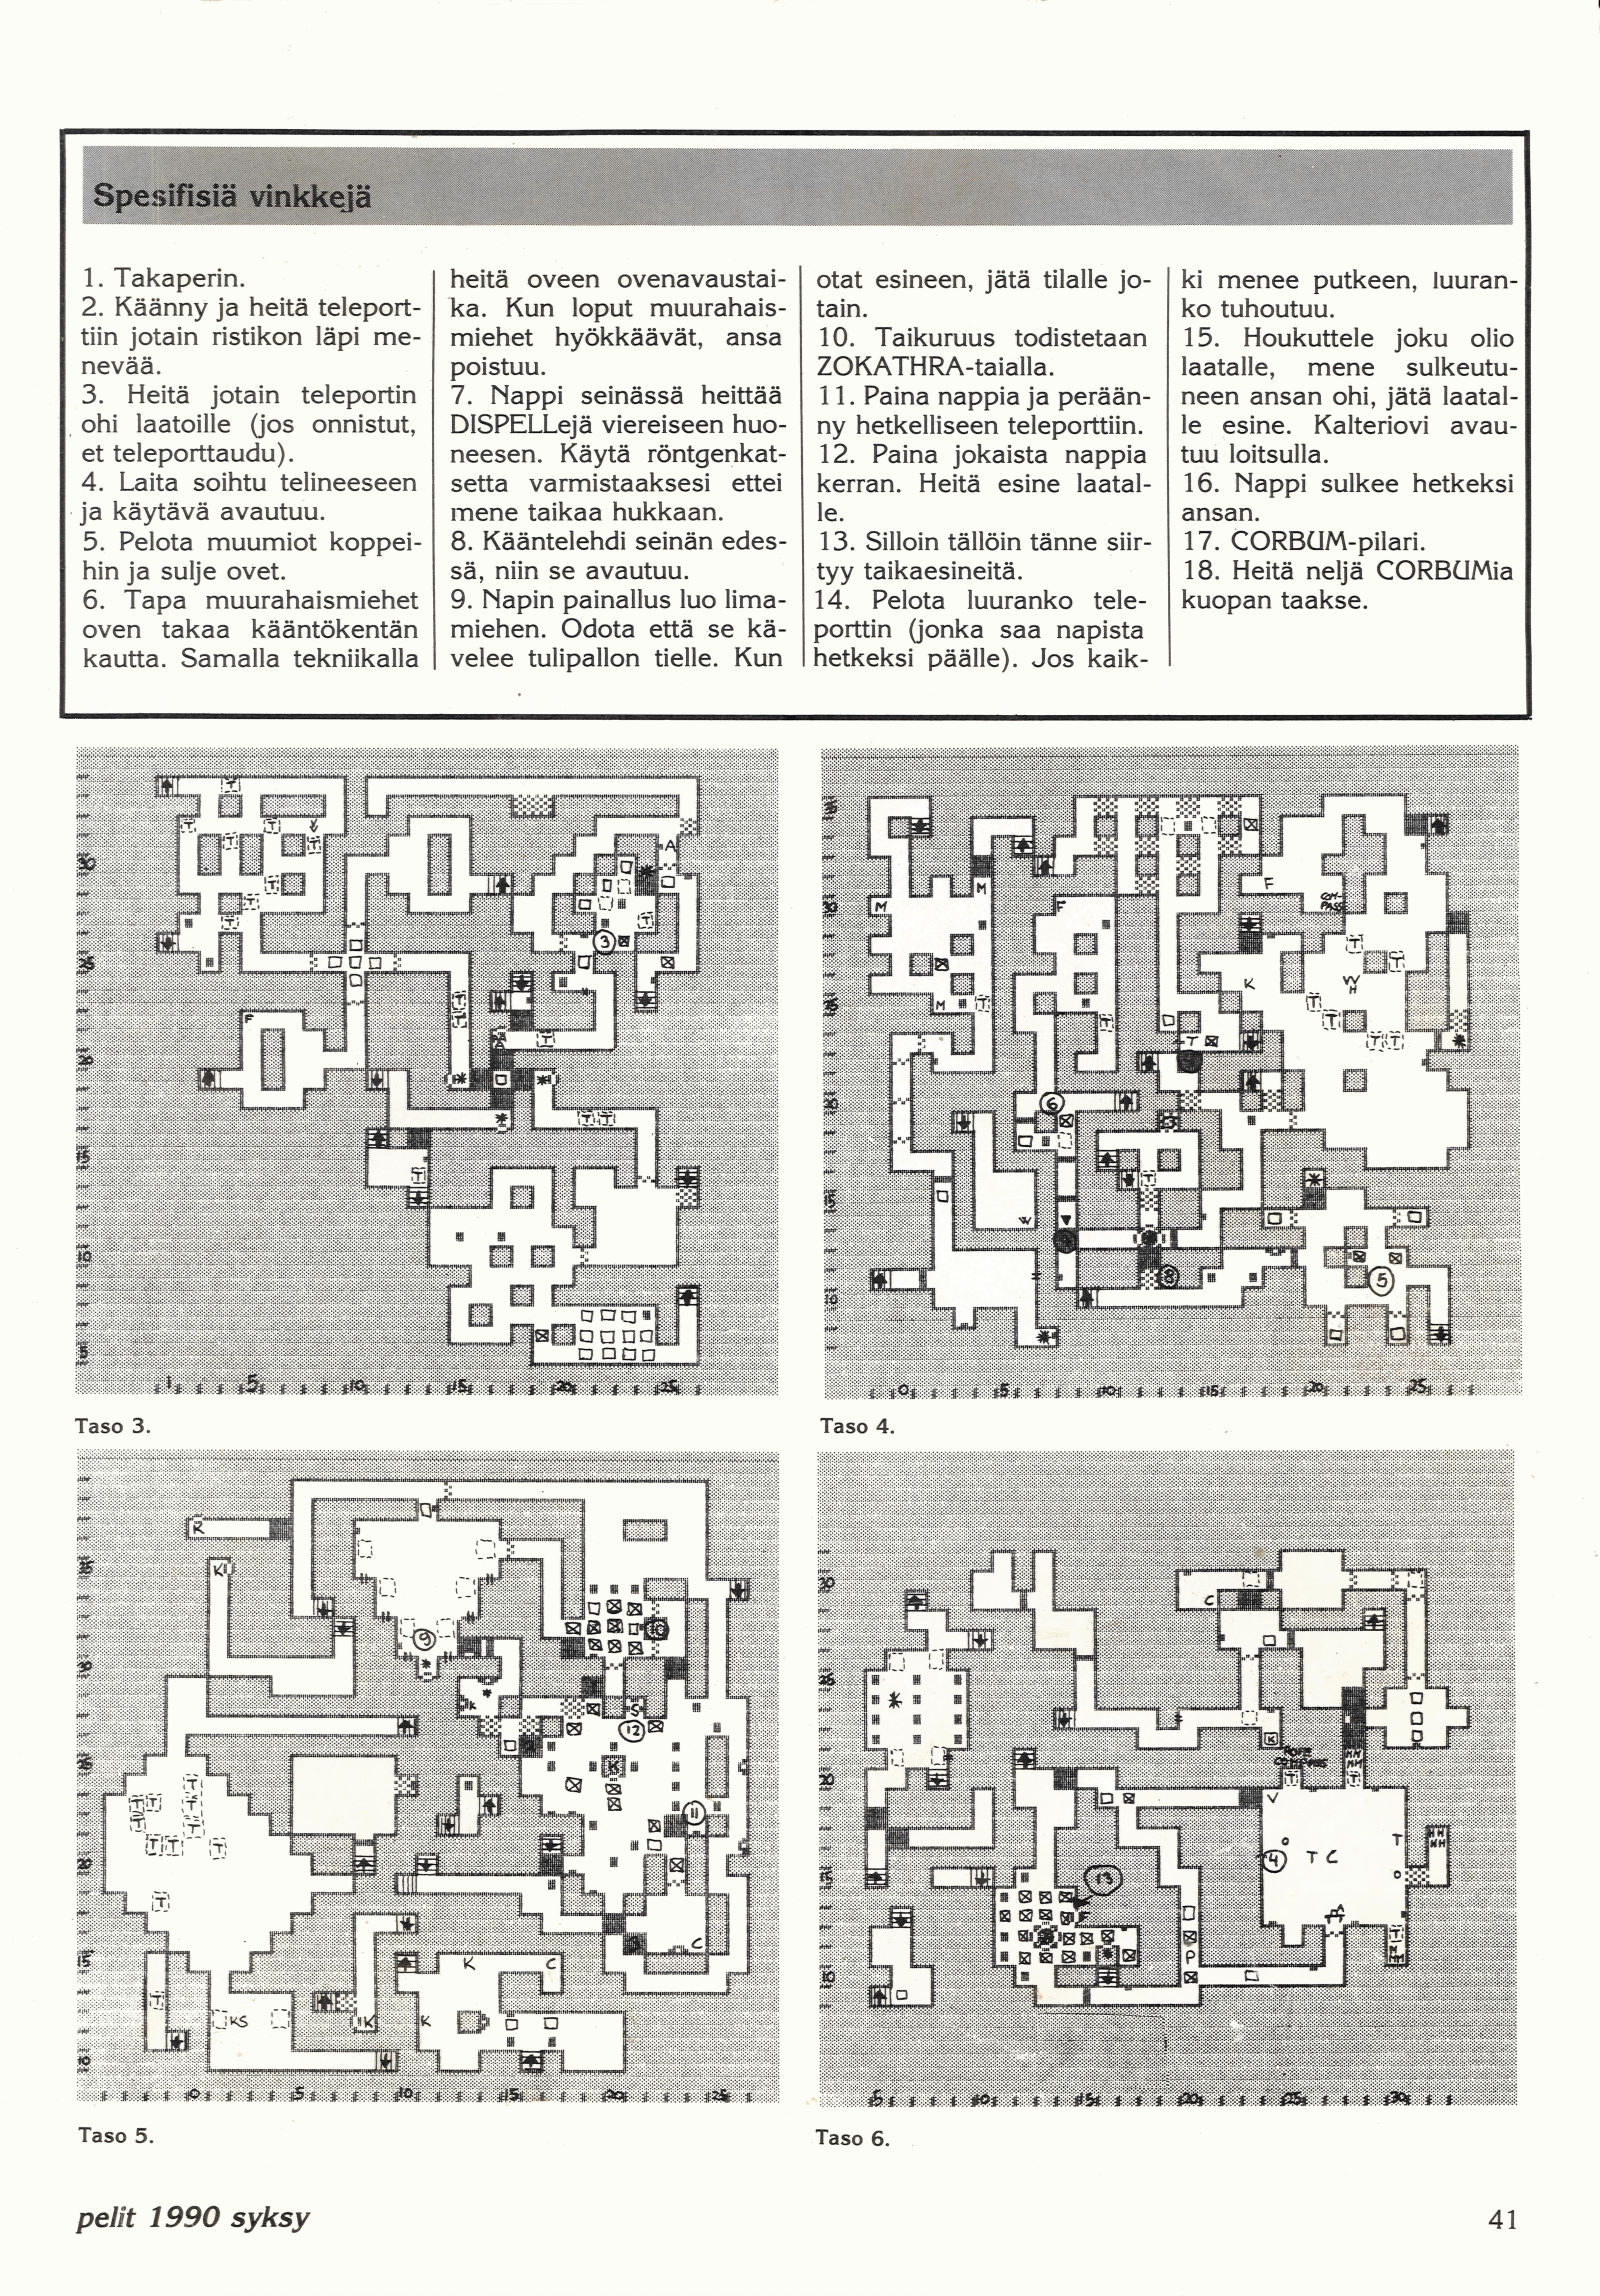 Chaos Strikes Back Hints published in Finnish magazine 'Pelit', Issue #6 Autumn 1990, Page 41